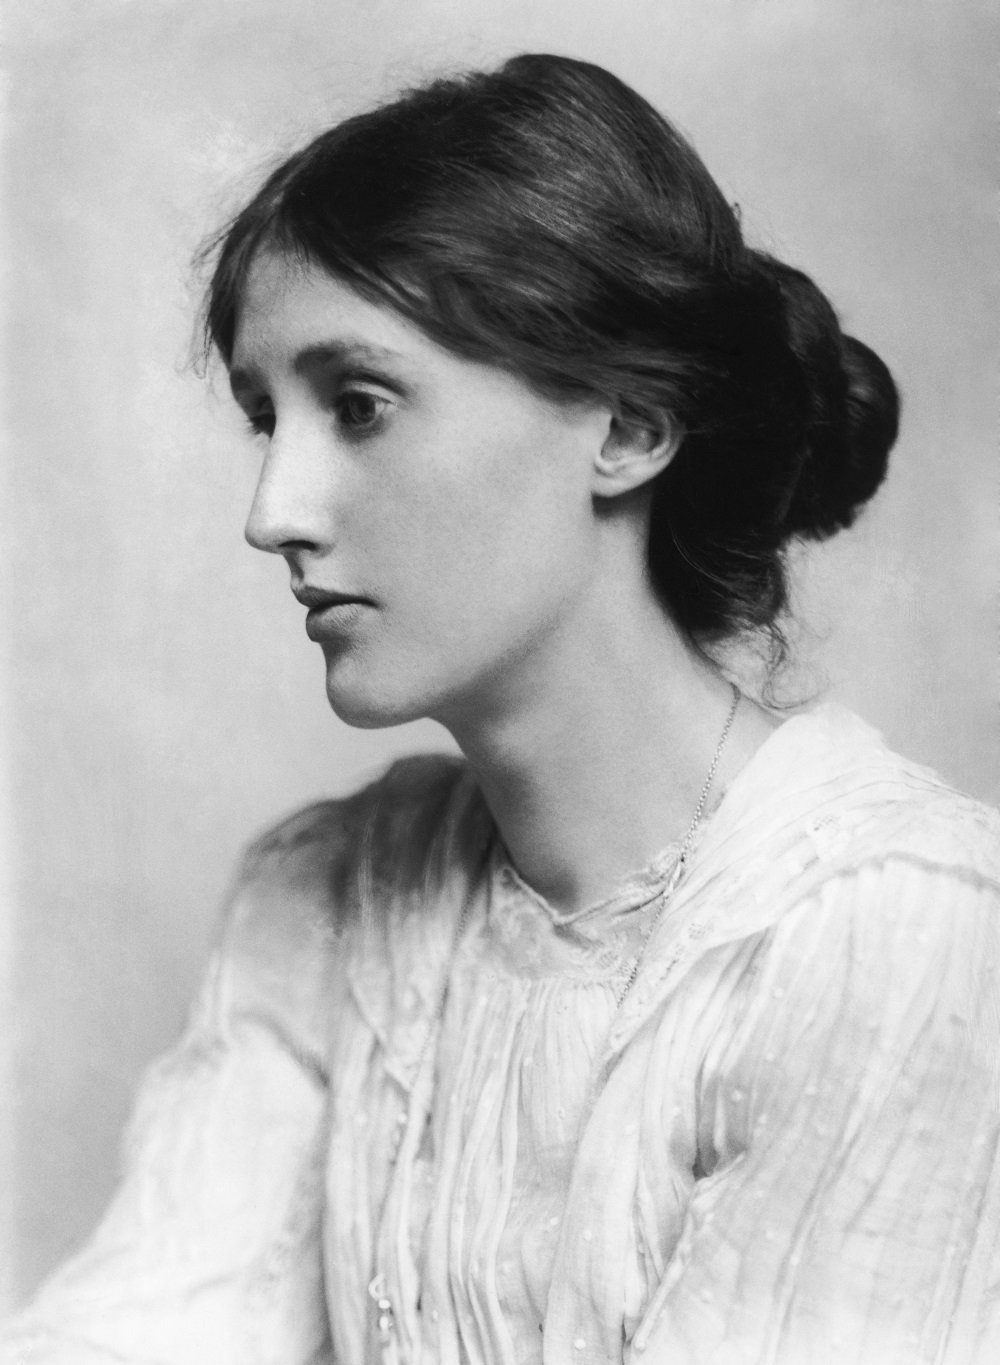 Virginia Woolf's Suicide Letter Is A Sad Reminder Of The Painful Tragedy That Mental Illness Can Be